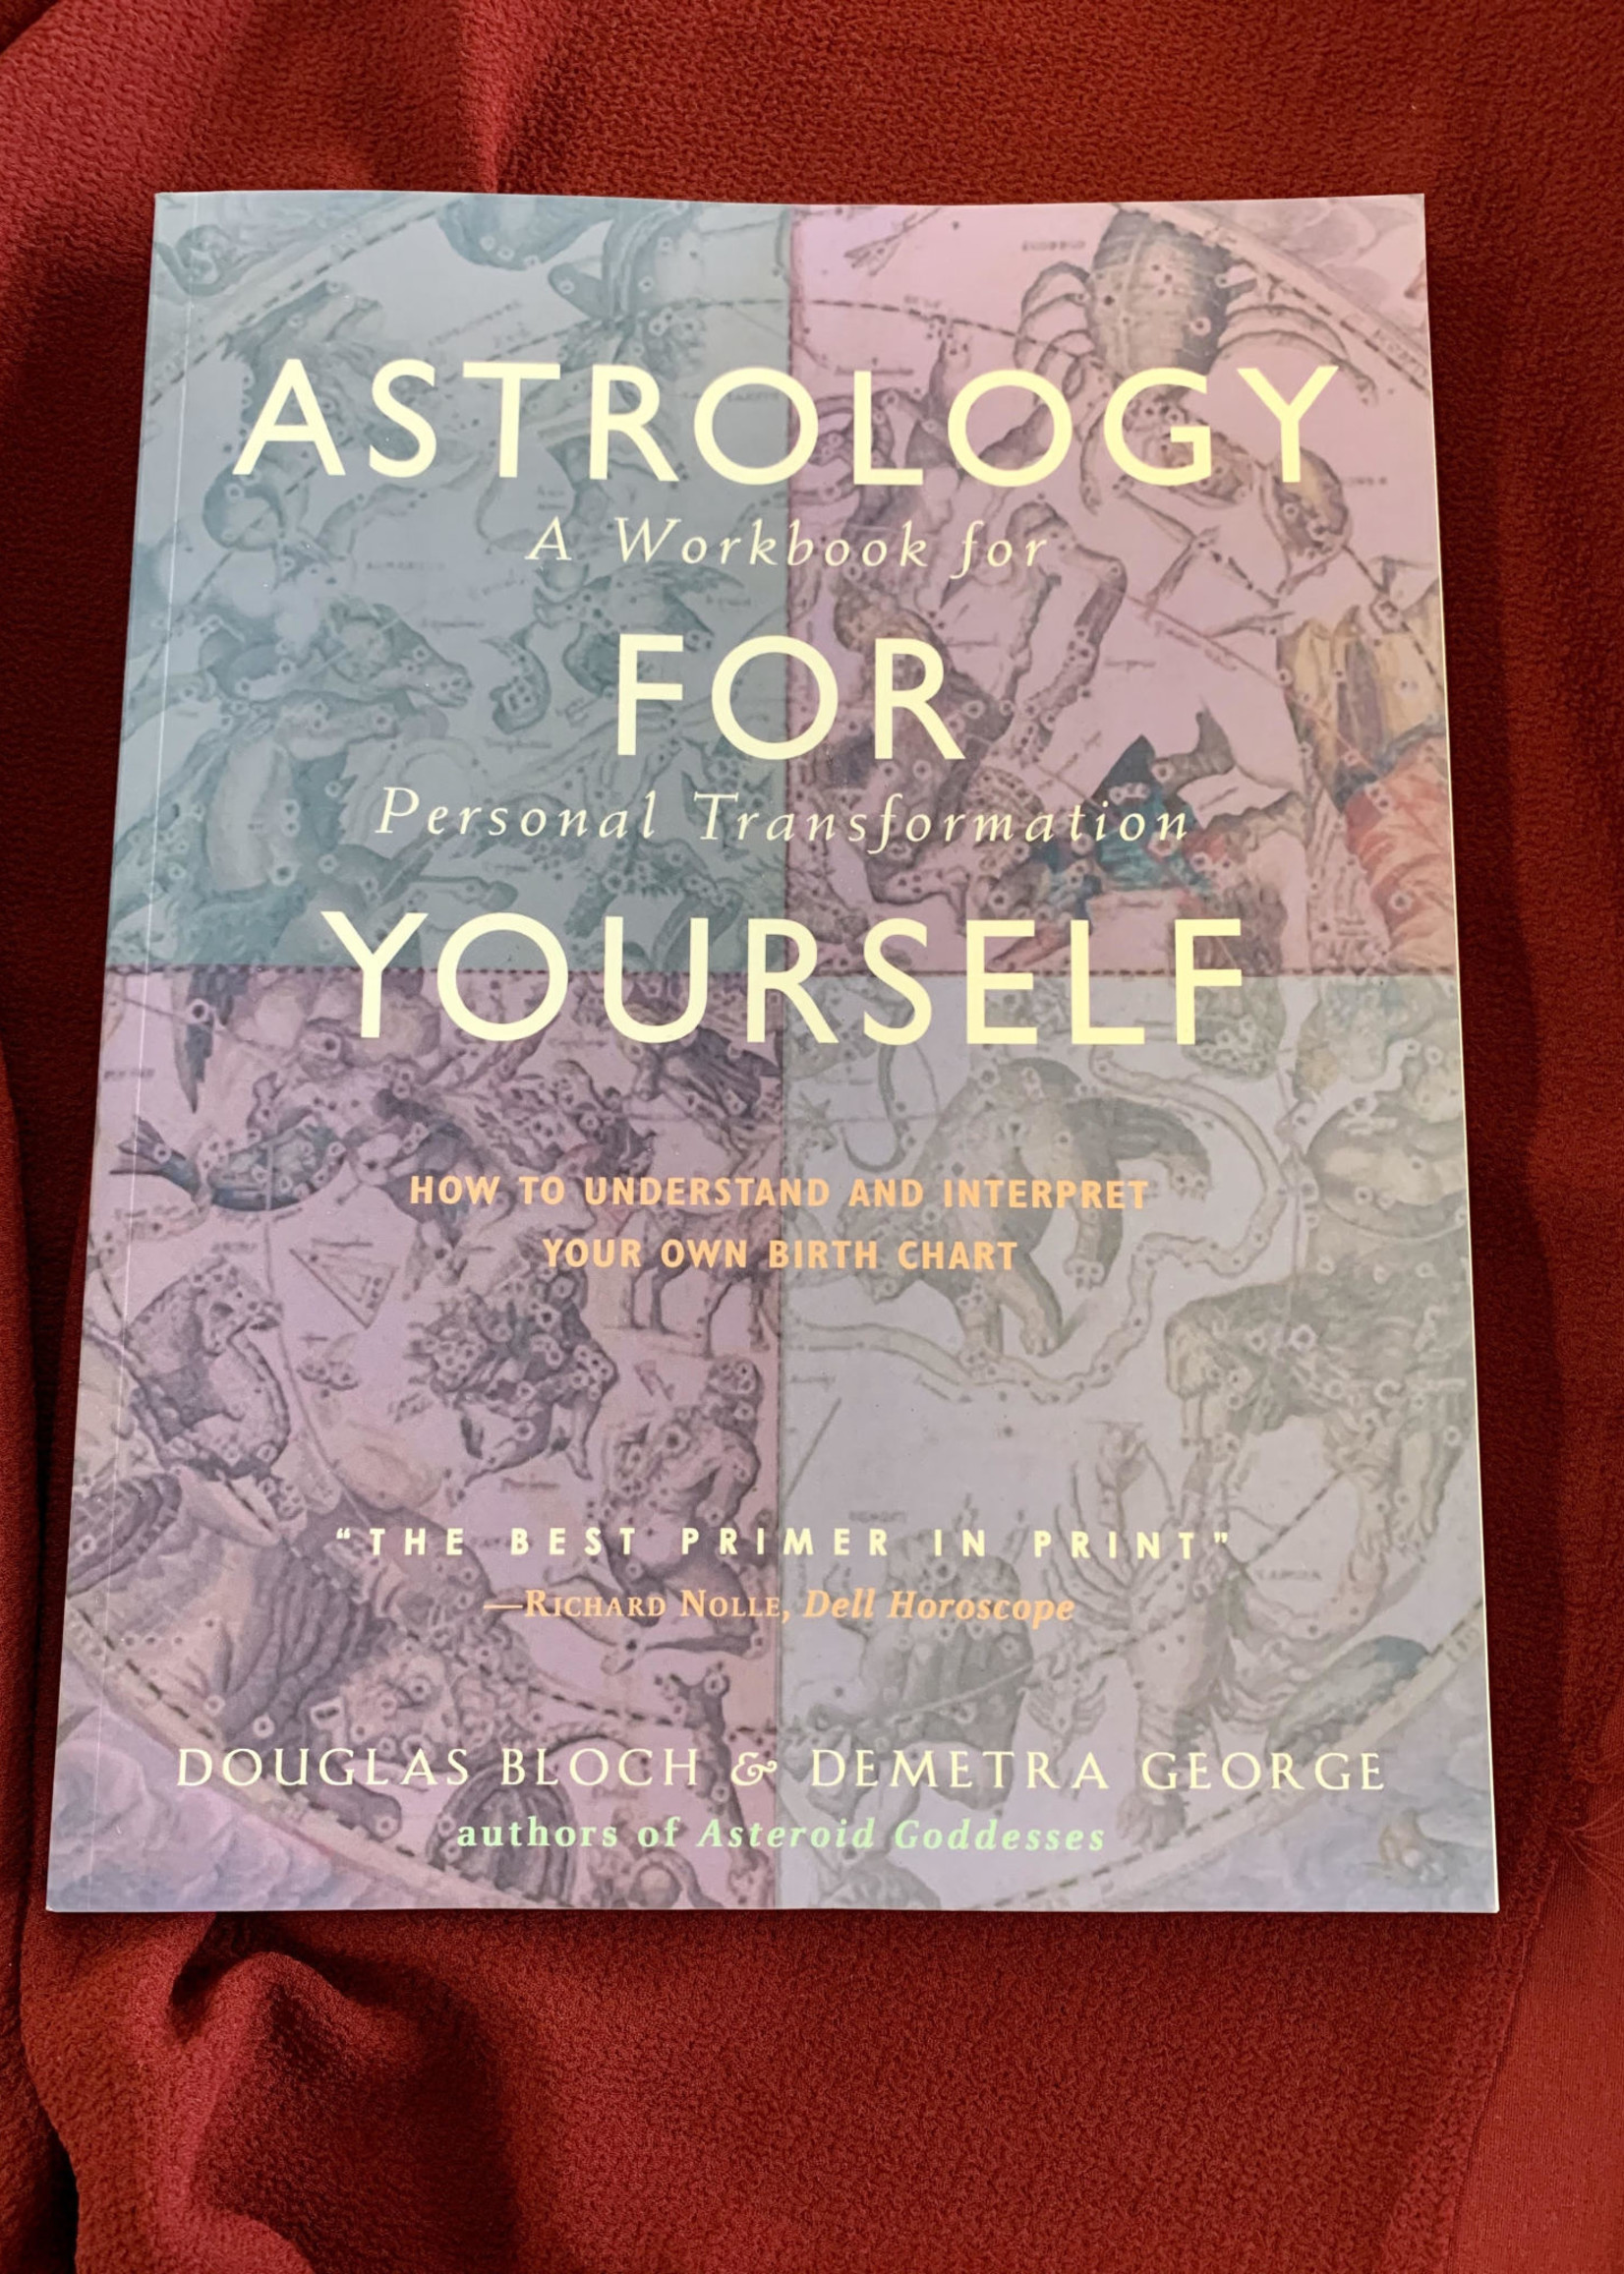 Astrology for Yourself How to Understand and Interpret Your Own Birth Chart - Douglas Bloch, Demetra George